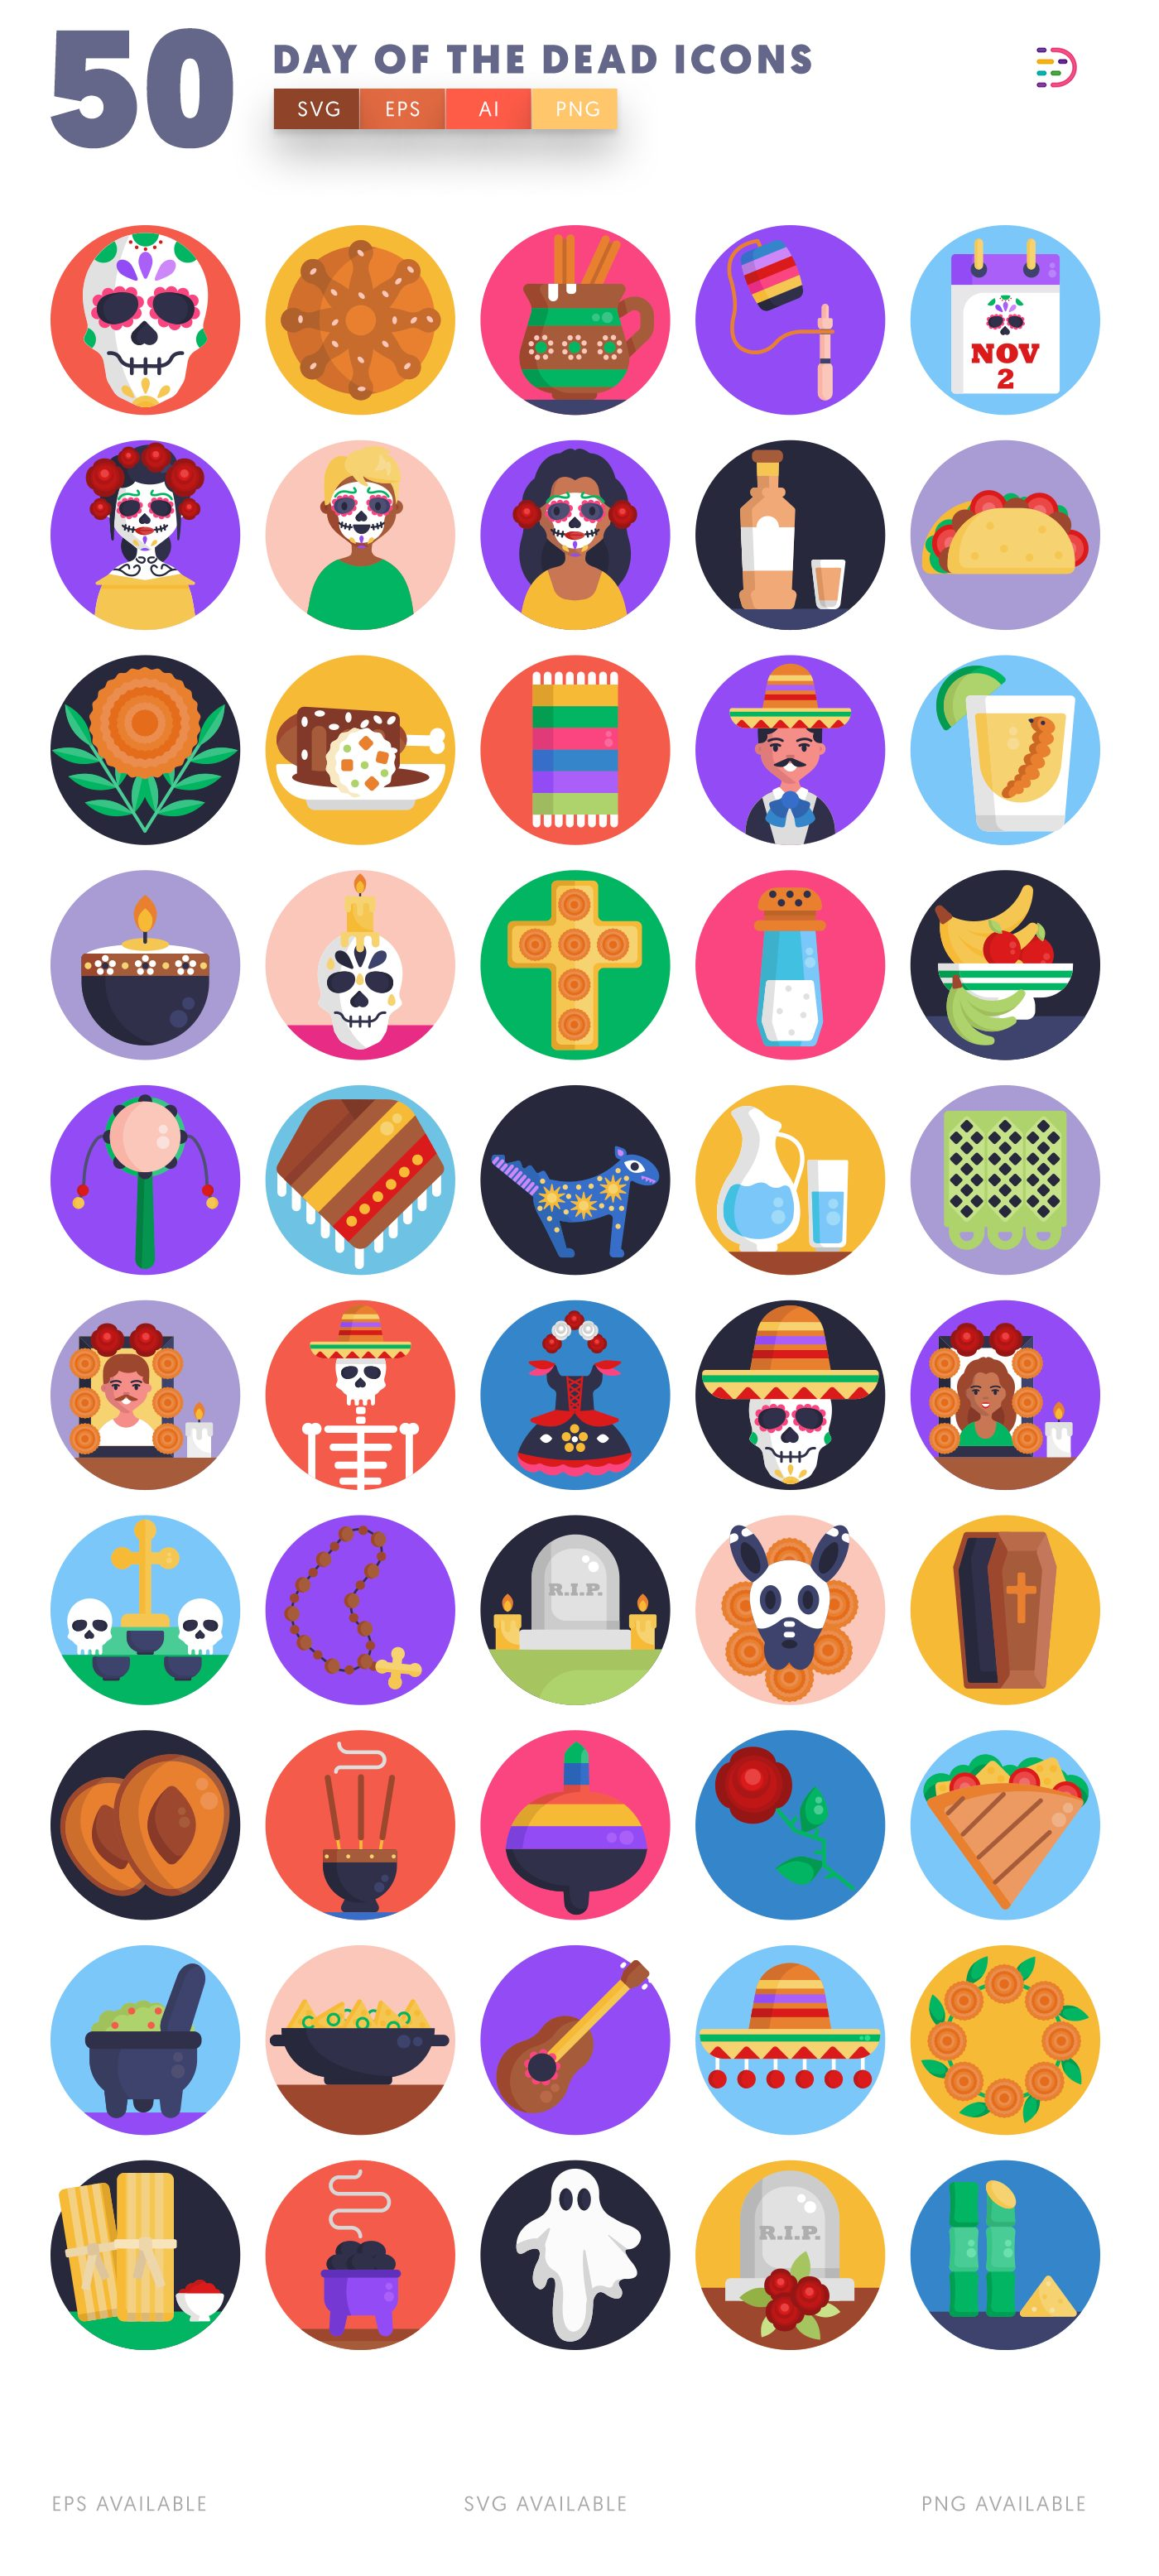 Day of the Dead icon pack